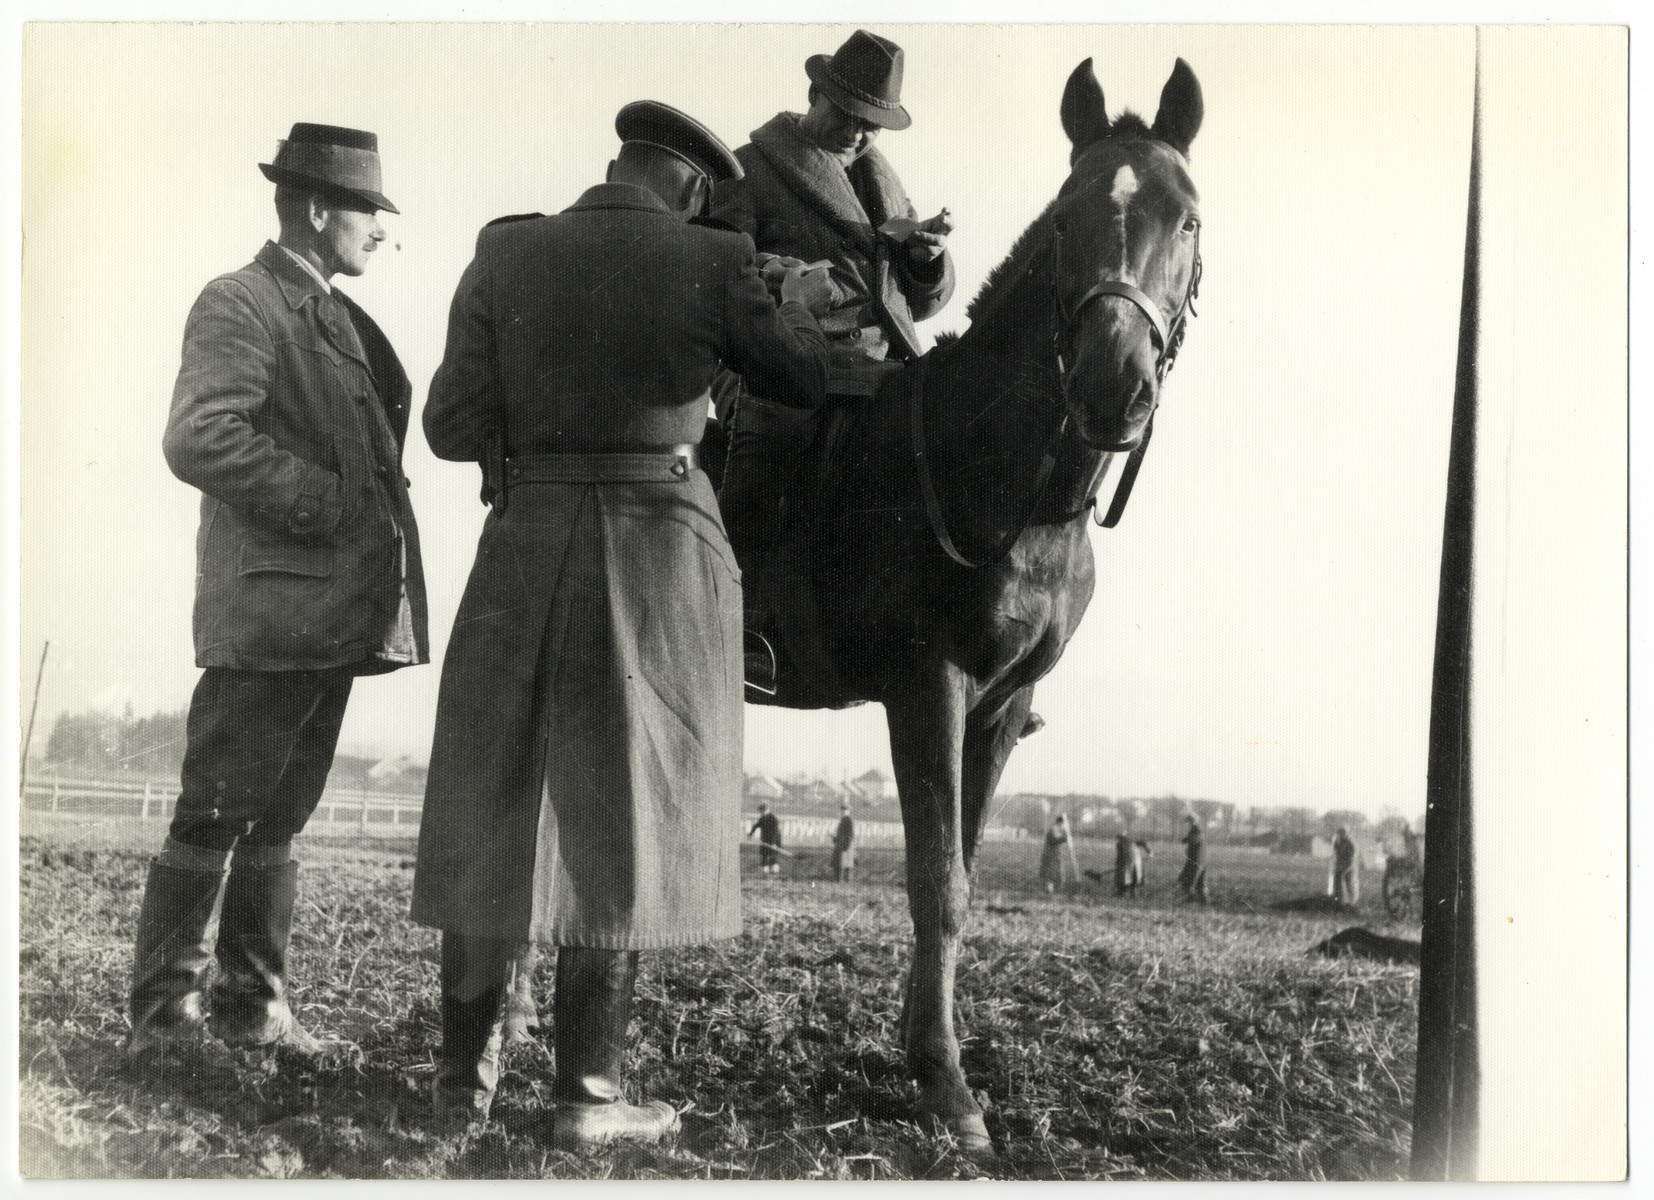 Three administrators of the Lipa farming labor camp confer with each other while slave laborers work in the background.  From left to right are a Czech farm administrator, SS guard Schmiller, and chief farm administrator and NSDAP member Karel Fousek (on the horse).